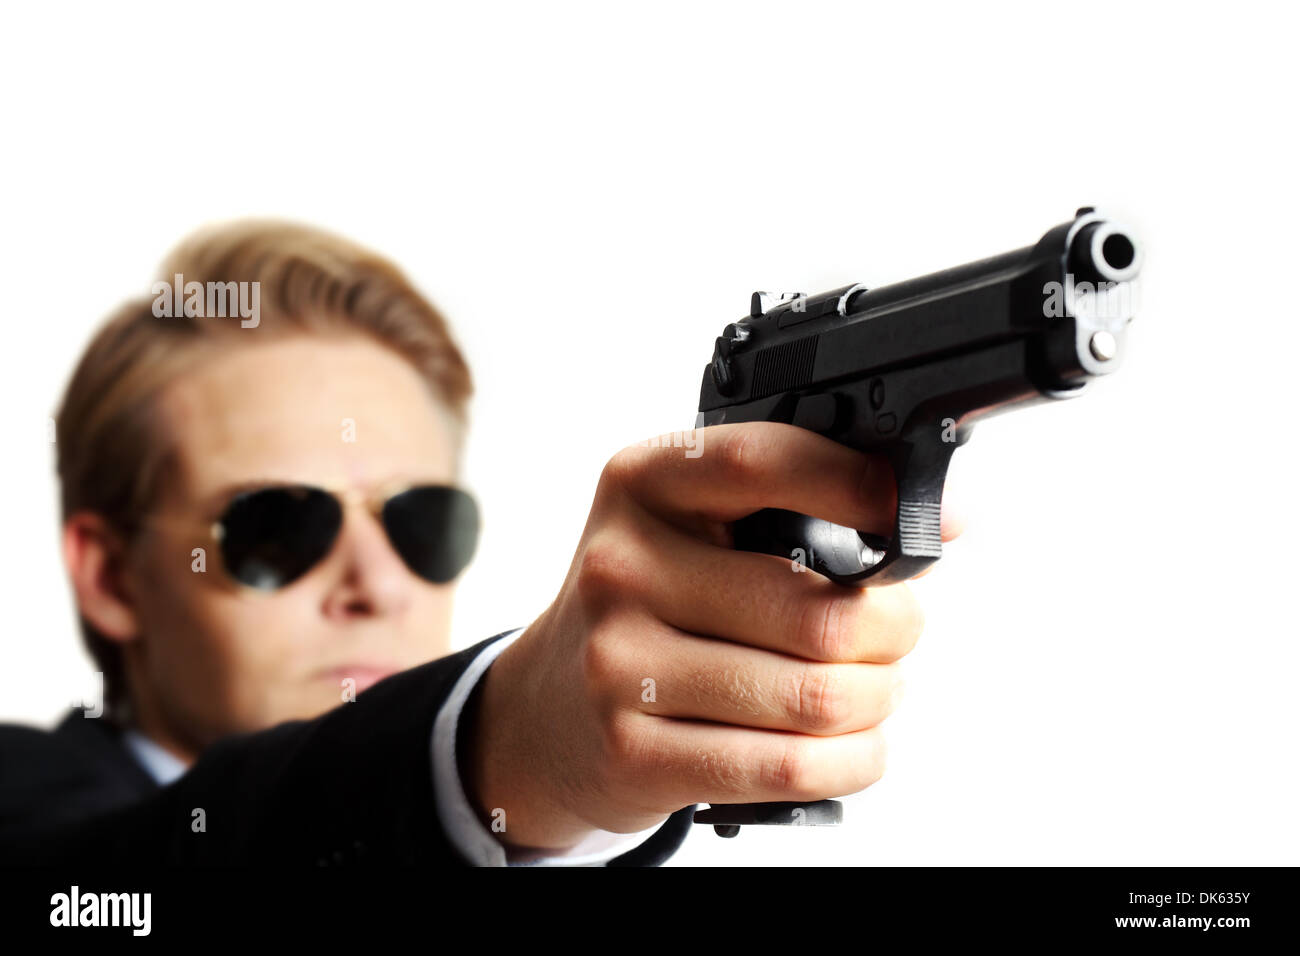 criminal with a gun on white background - Stock Image